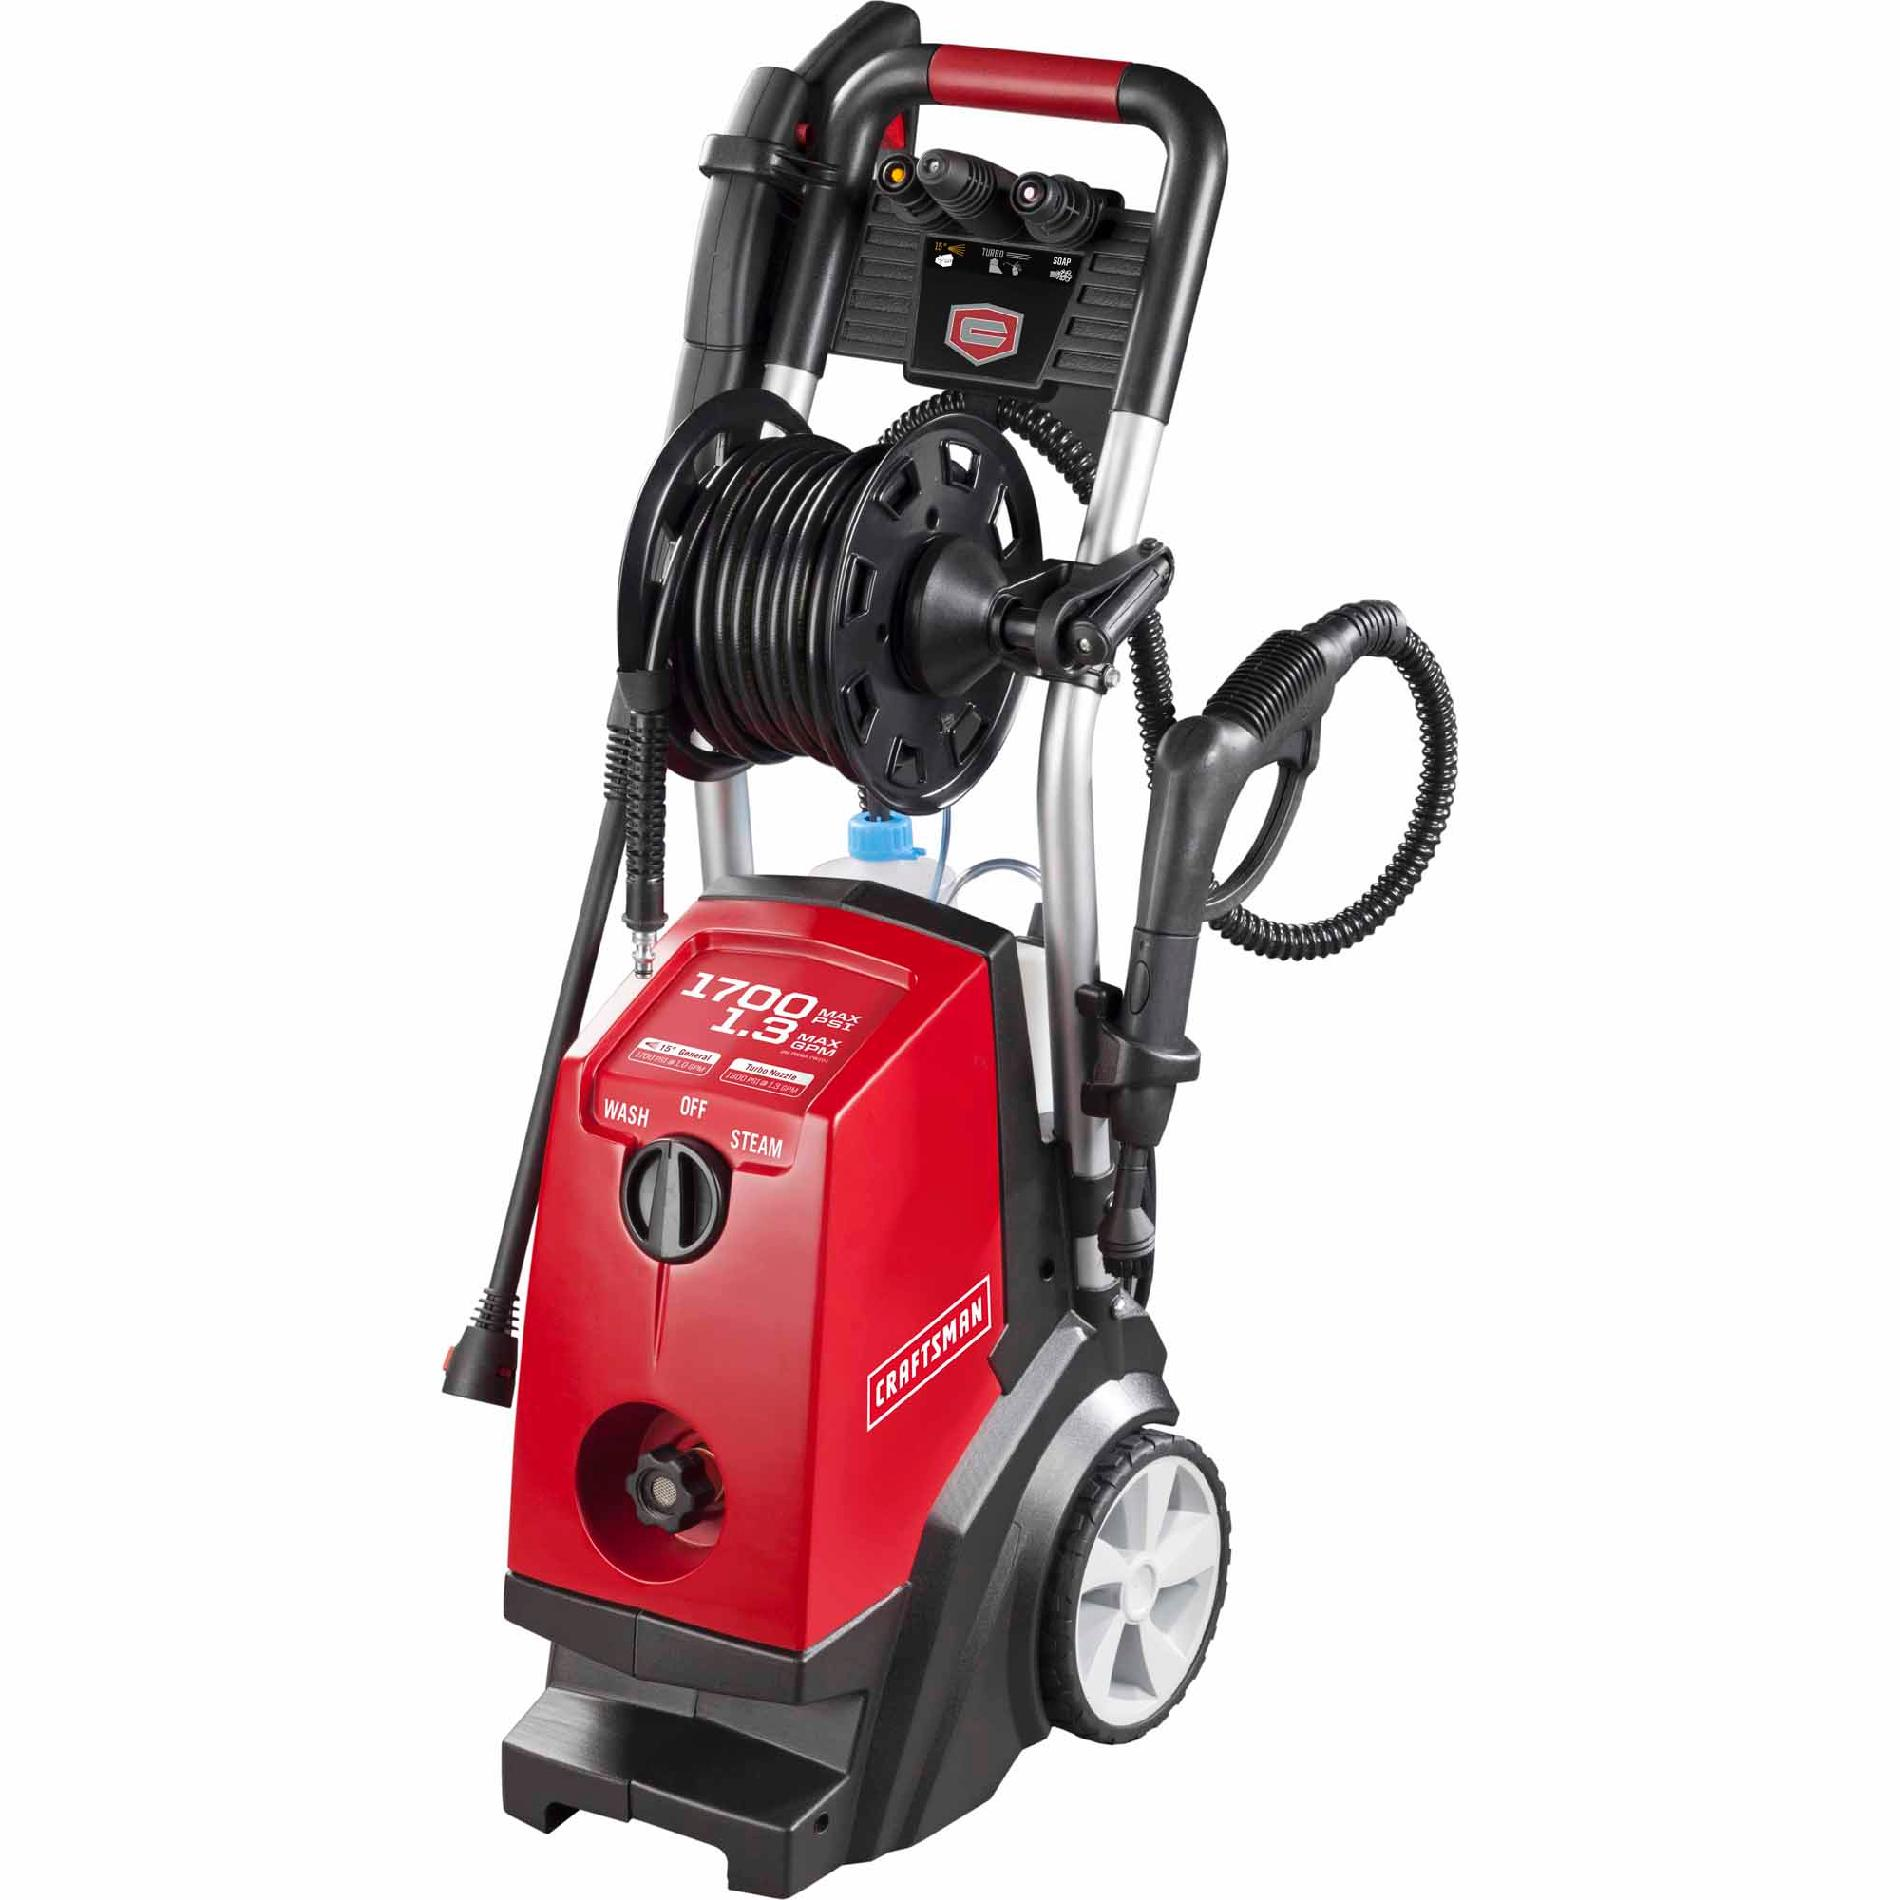 Craftsman 1700psi 1.3GPM Electric Pressure Washer with Steam Cleaner